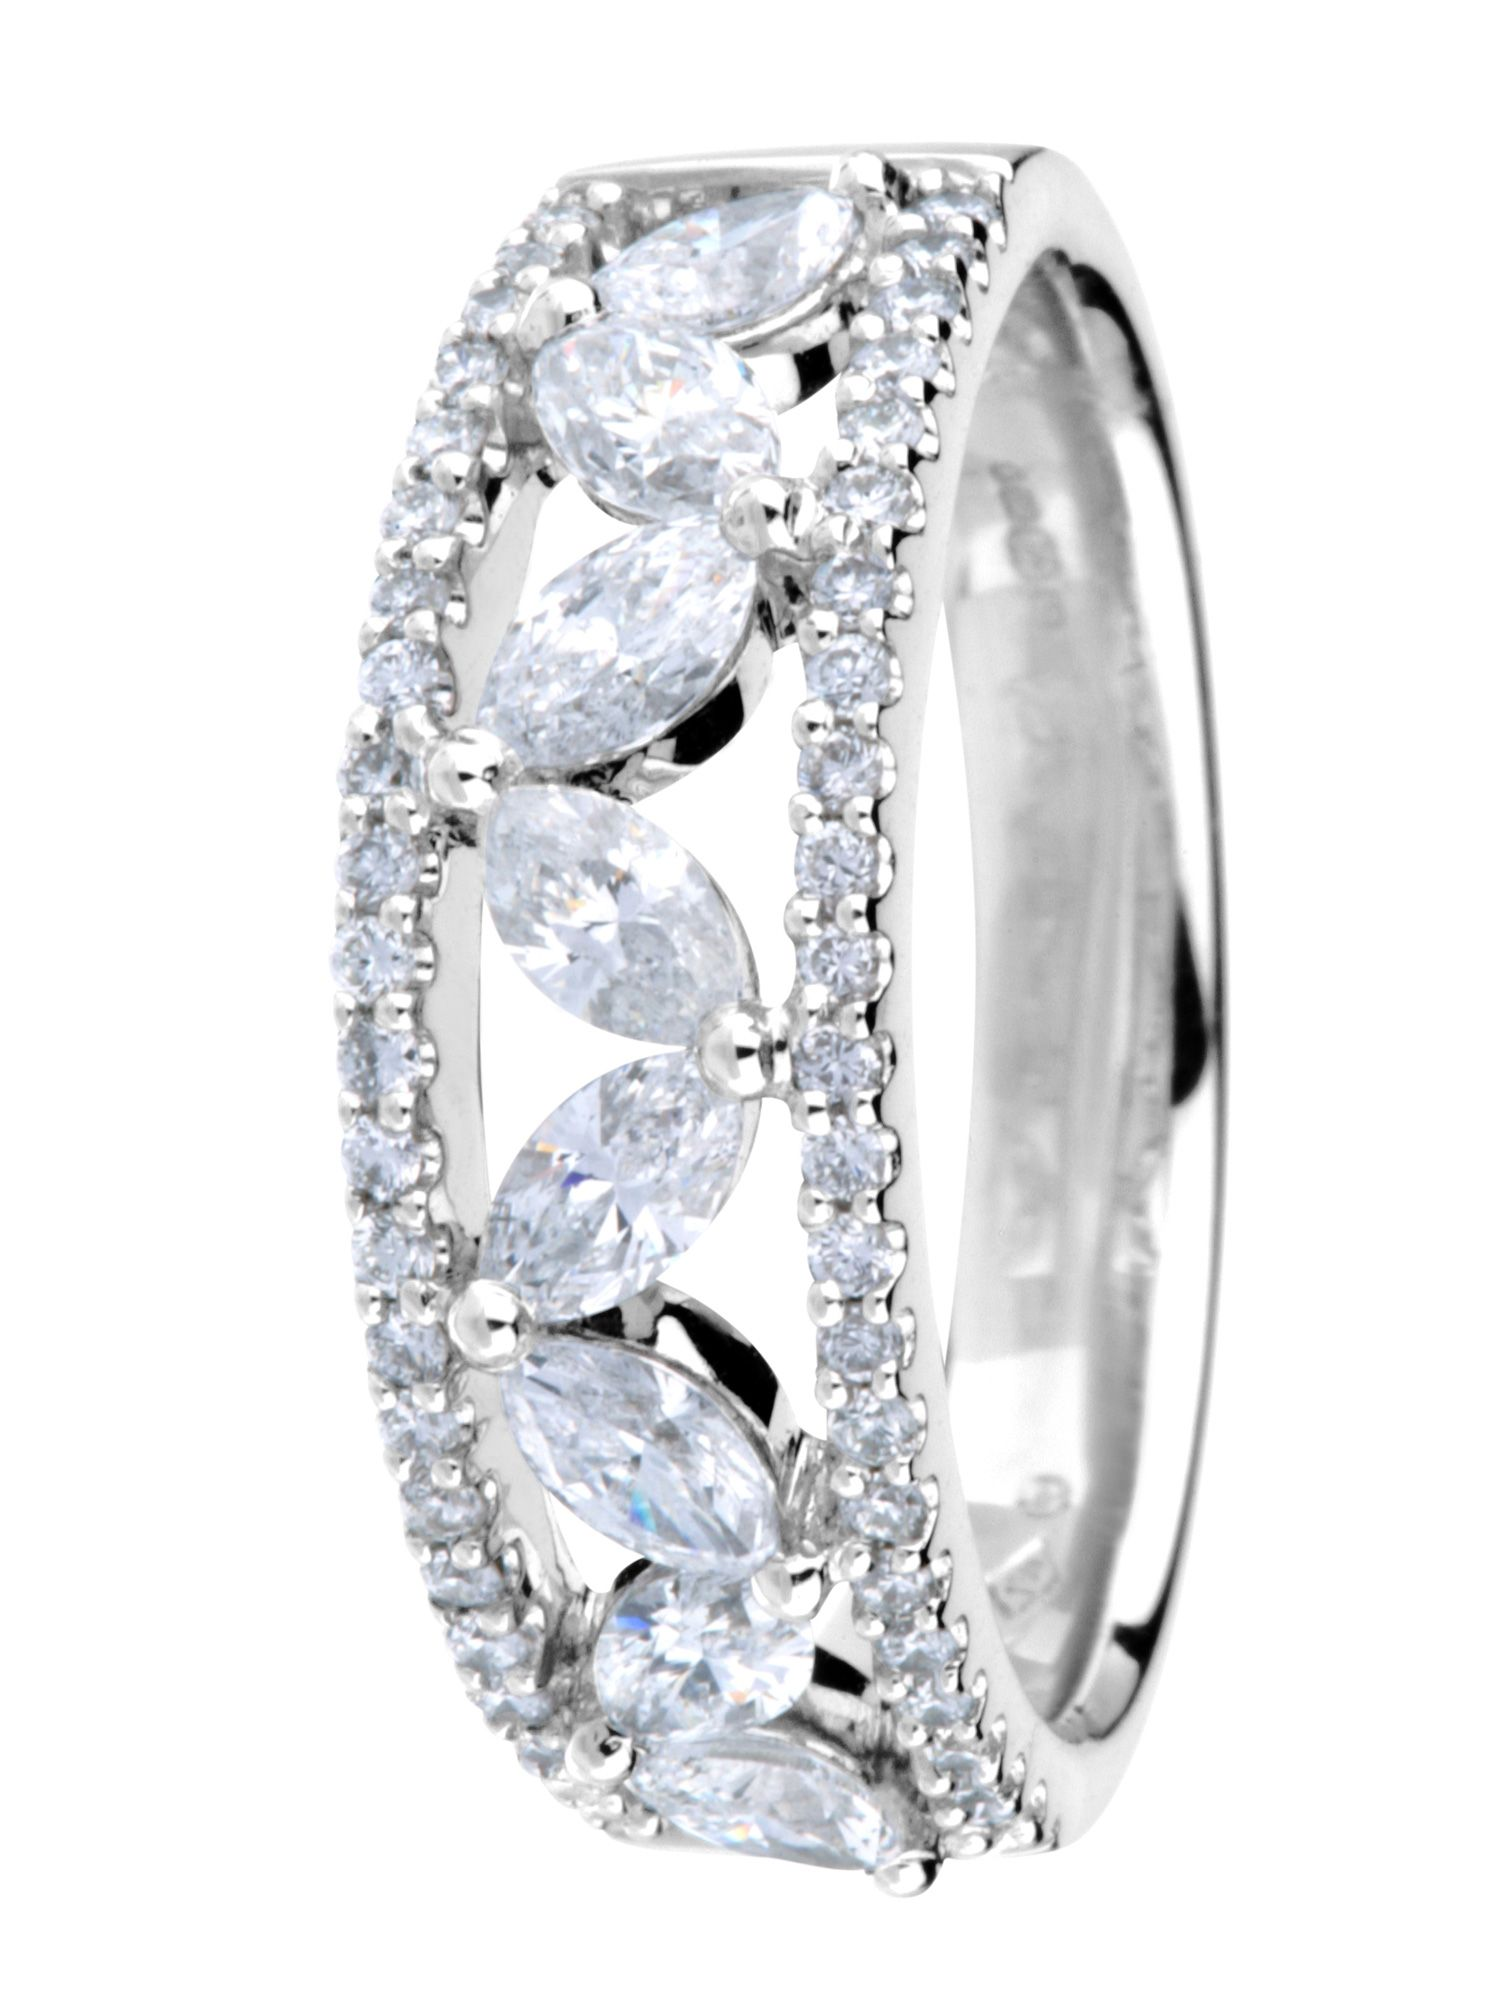 Goldsmiths 18ct white gold 1.00ct diamond ring, White Gold